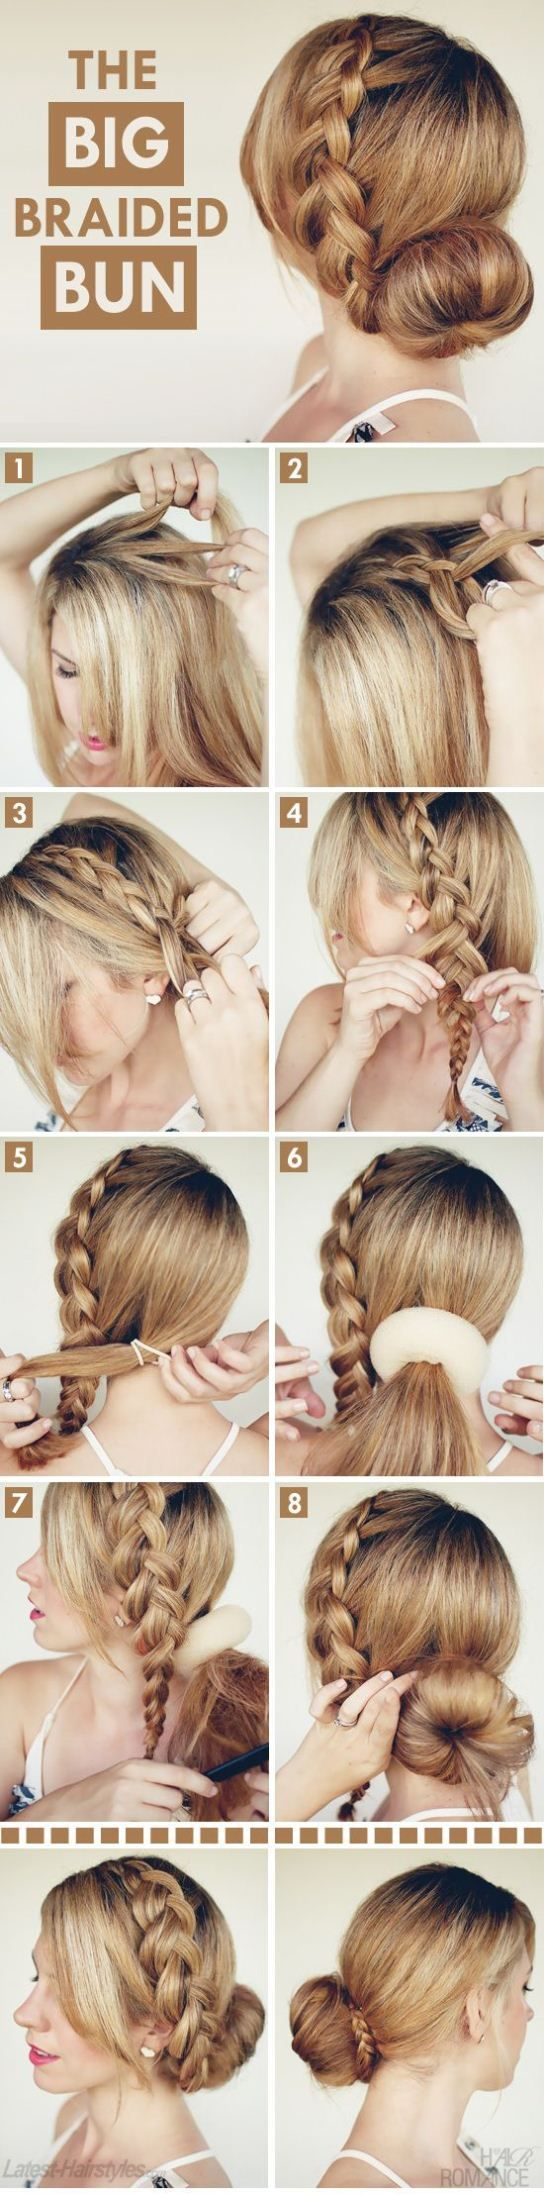 best hair u makeup images on pinterest beauty products beauty